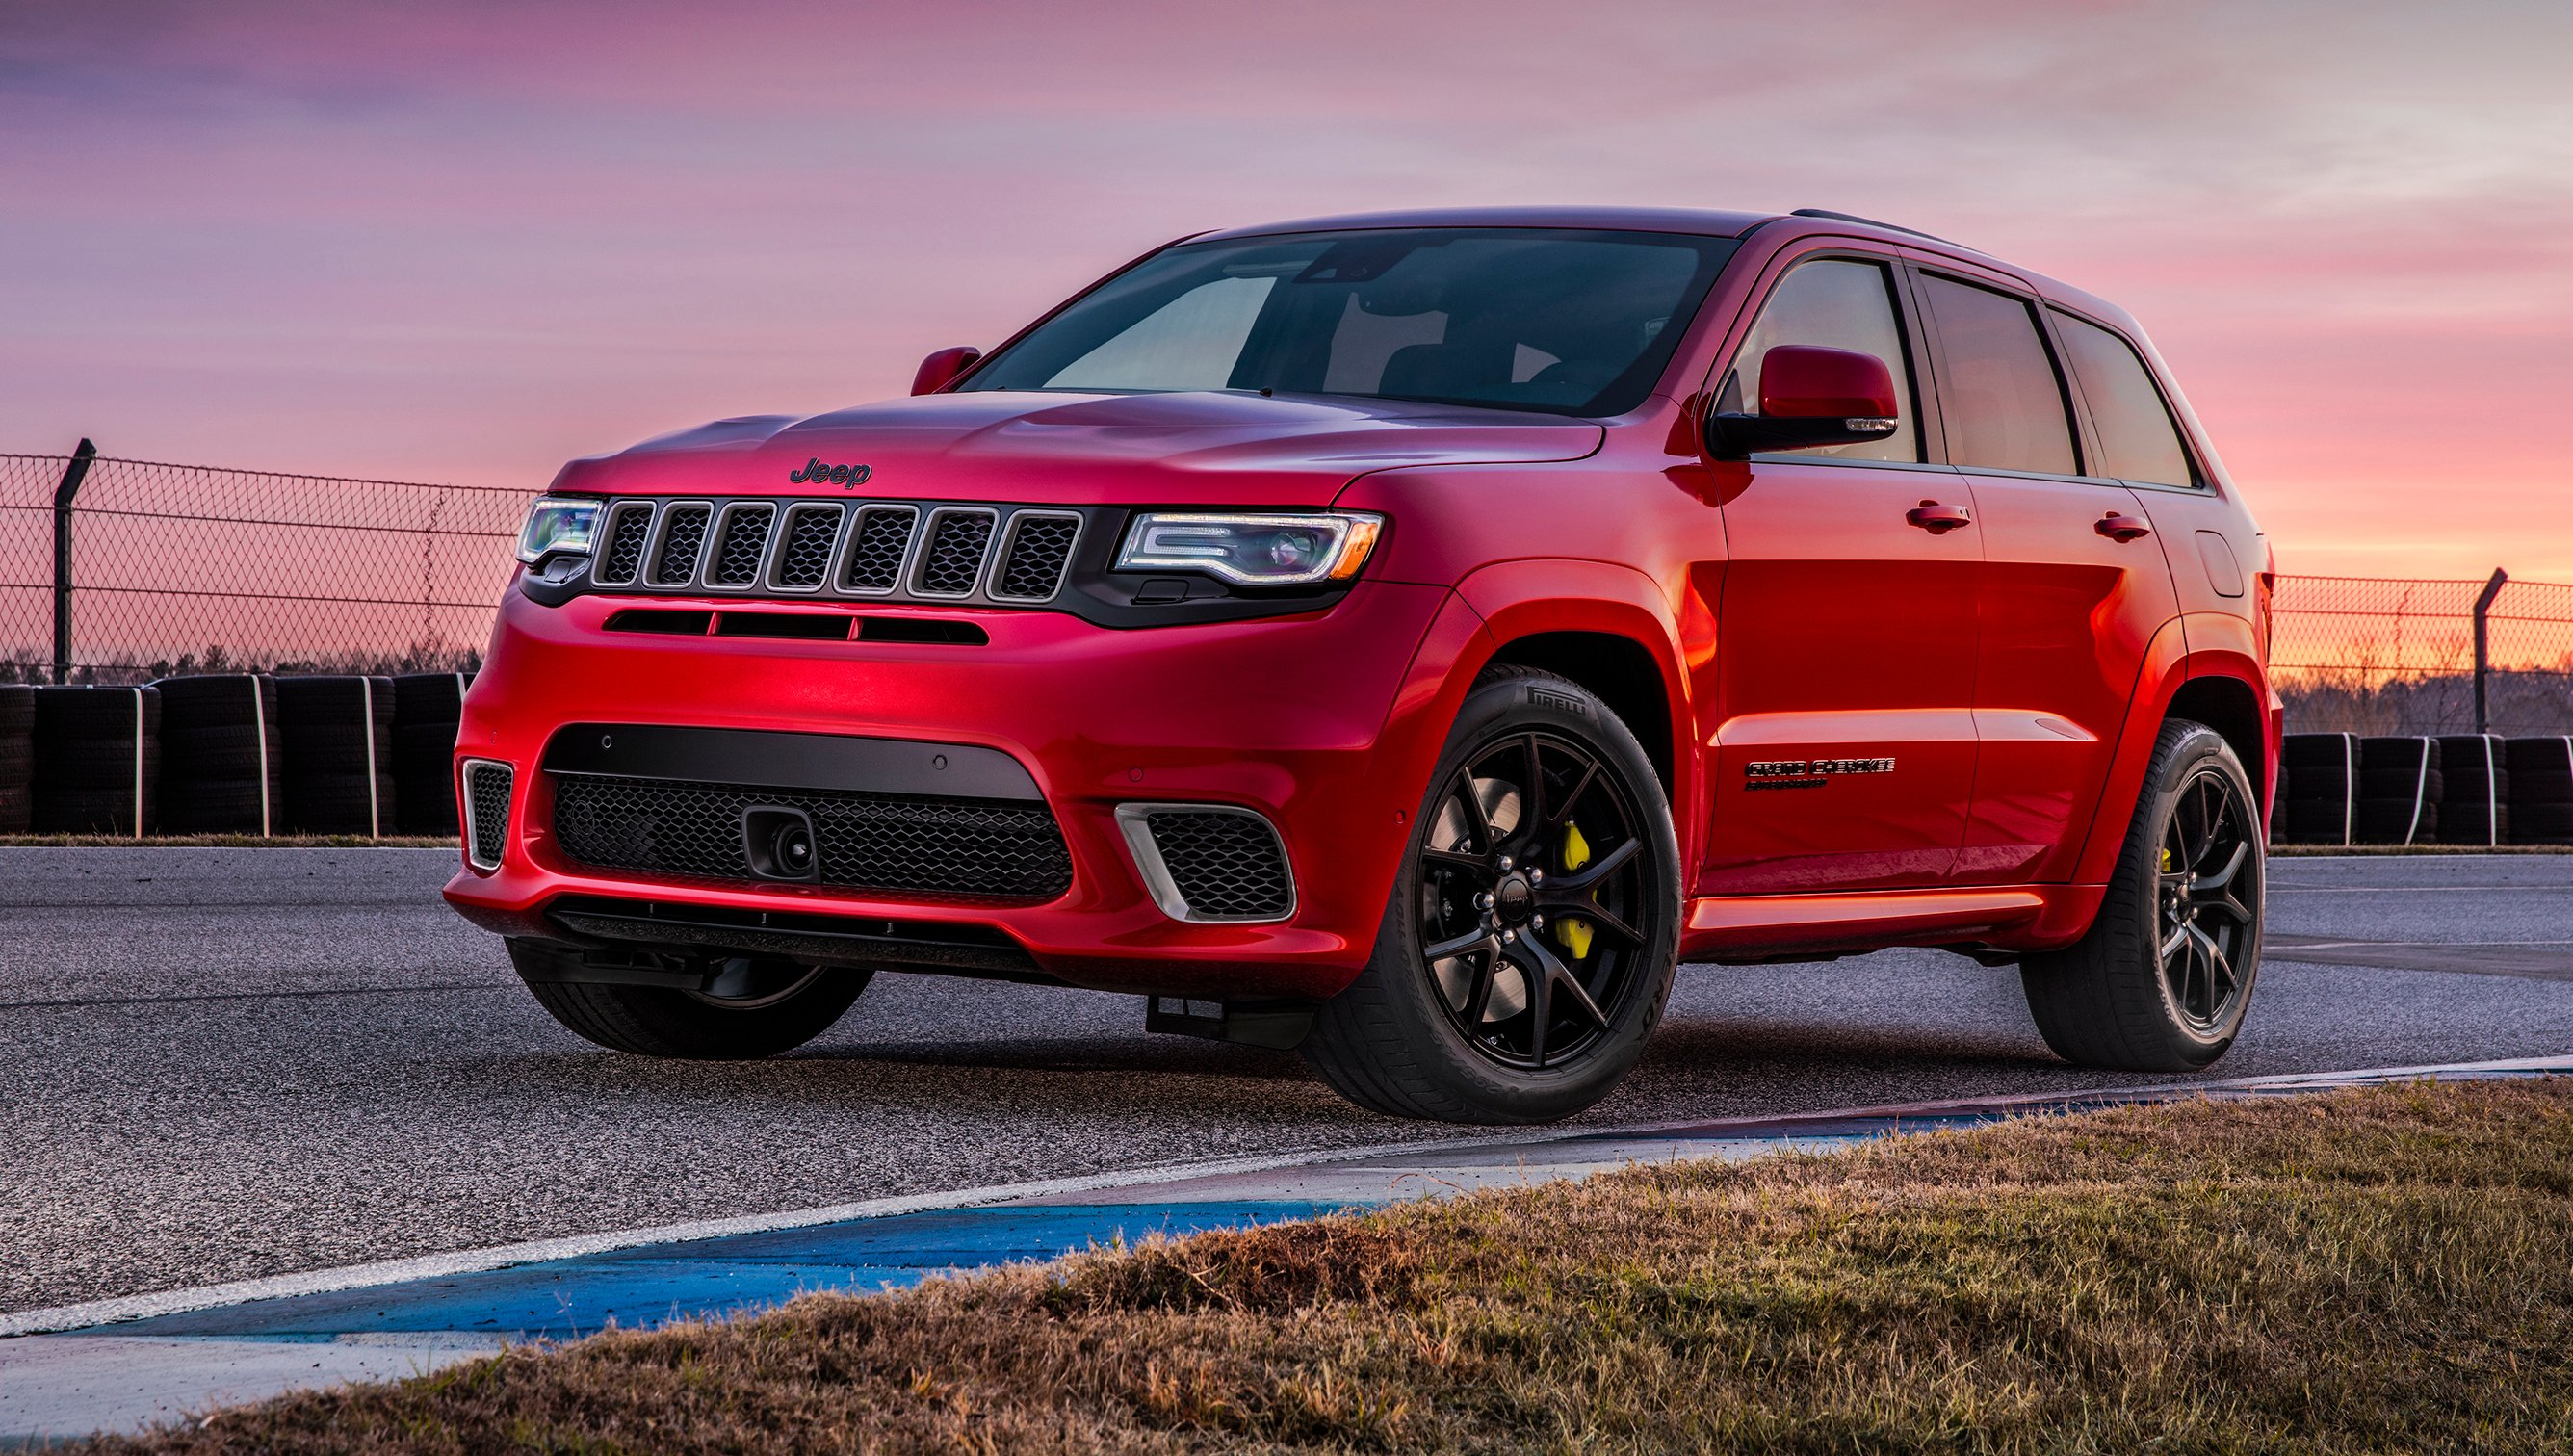 2017 jeep grand cherokee trackhawk revealed australian arm keen photos 1 of 51. Black Bedroom Furniture Sets. Home Design Ideas